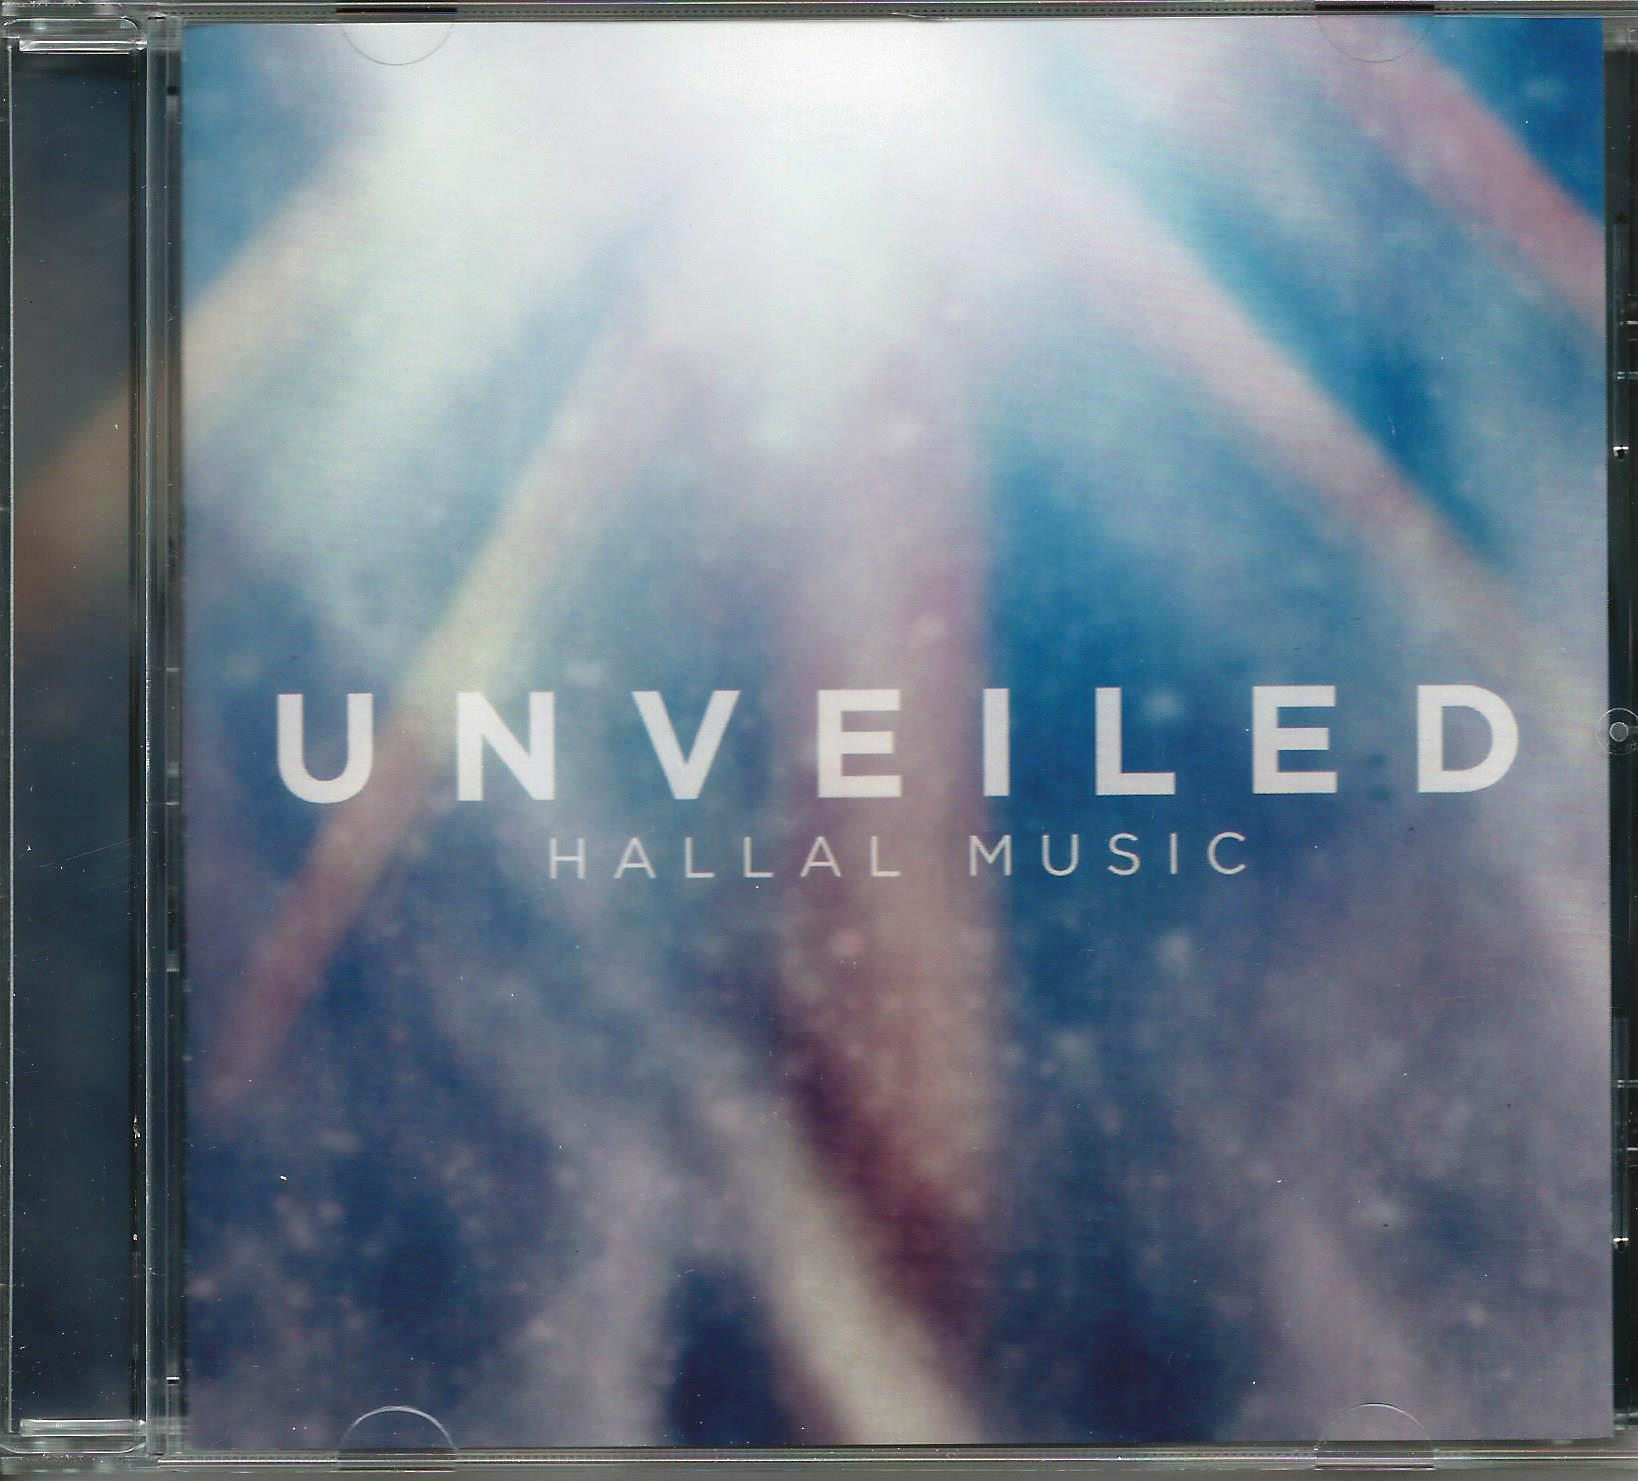 UNVEILED Hallal Music